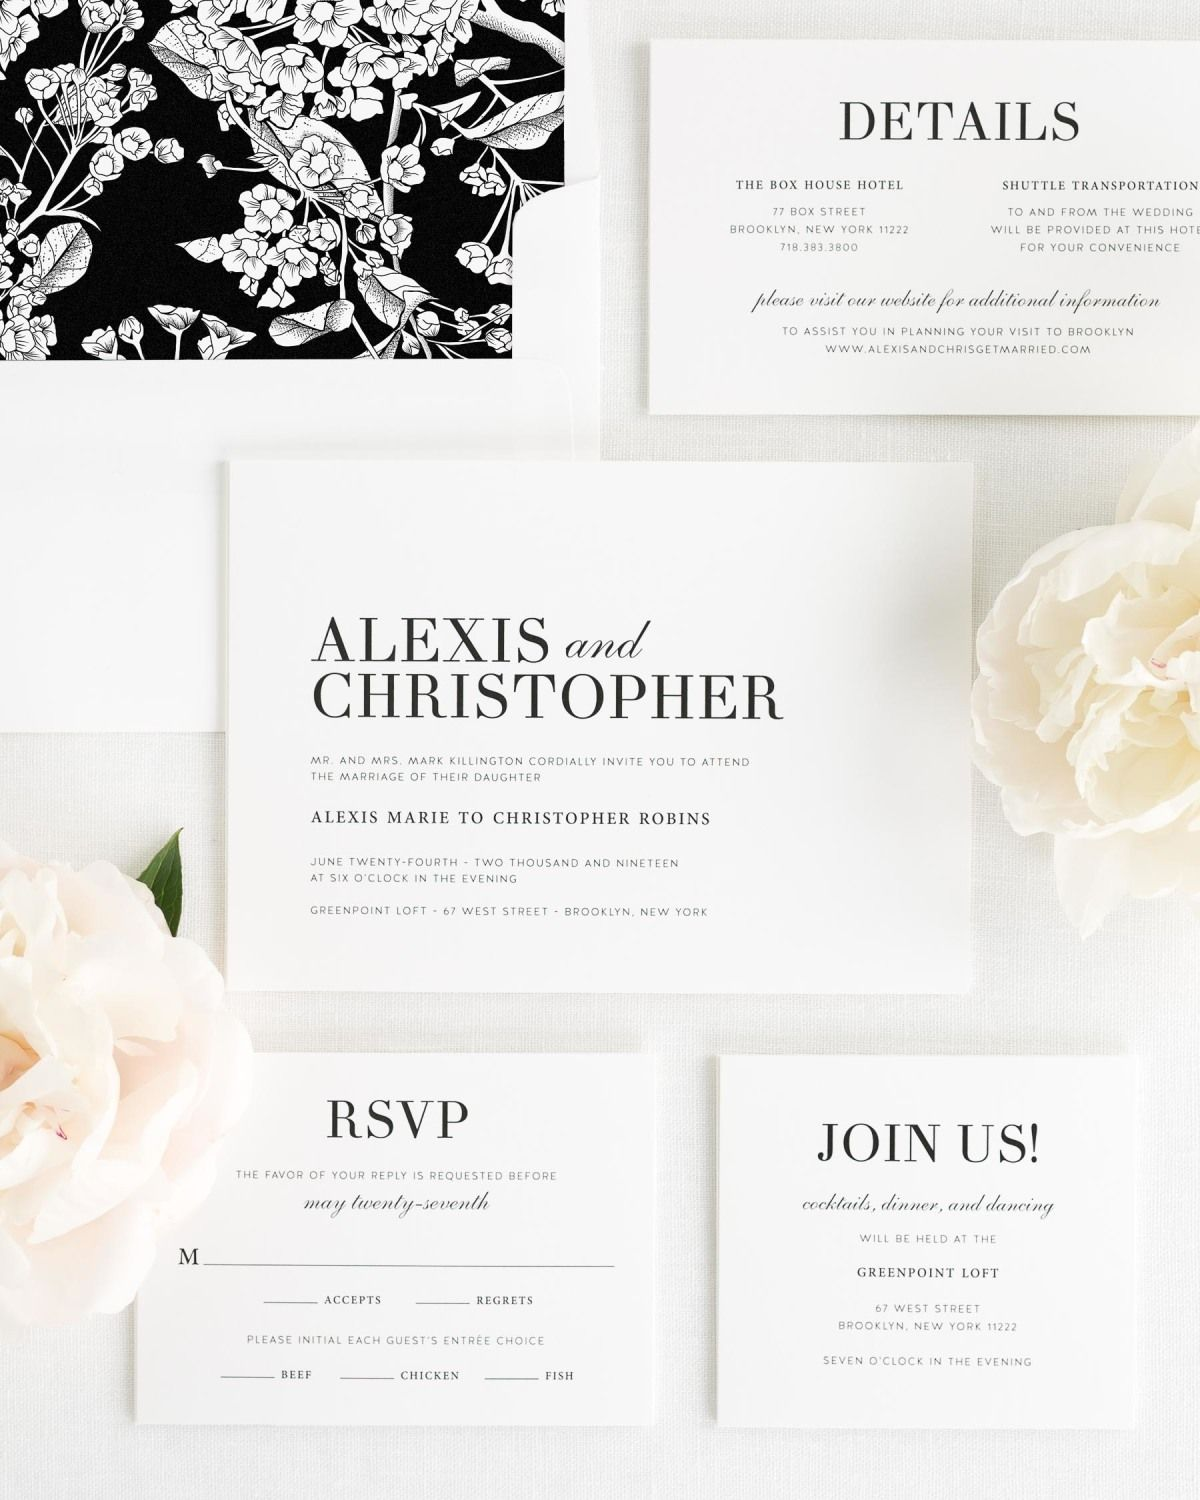 Our Urban Glamour Wedding Invitations 3 ways – Wedding Invitations